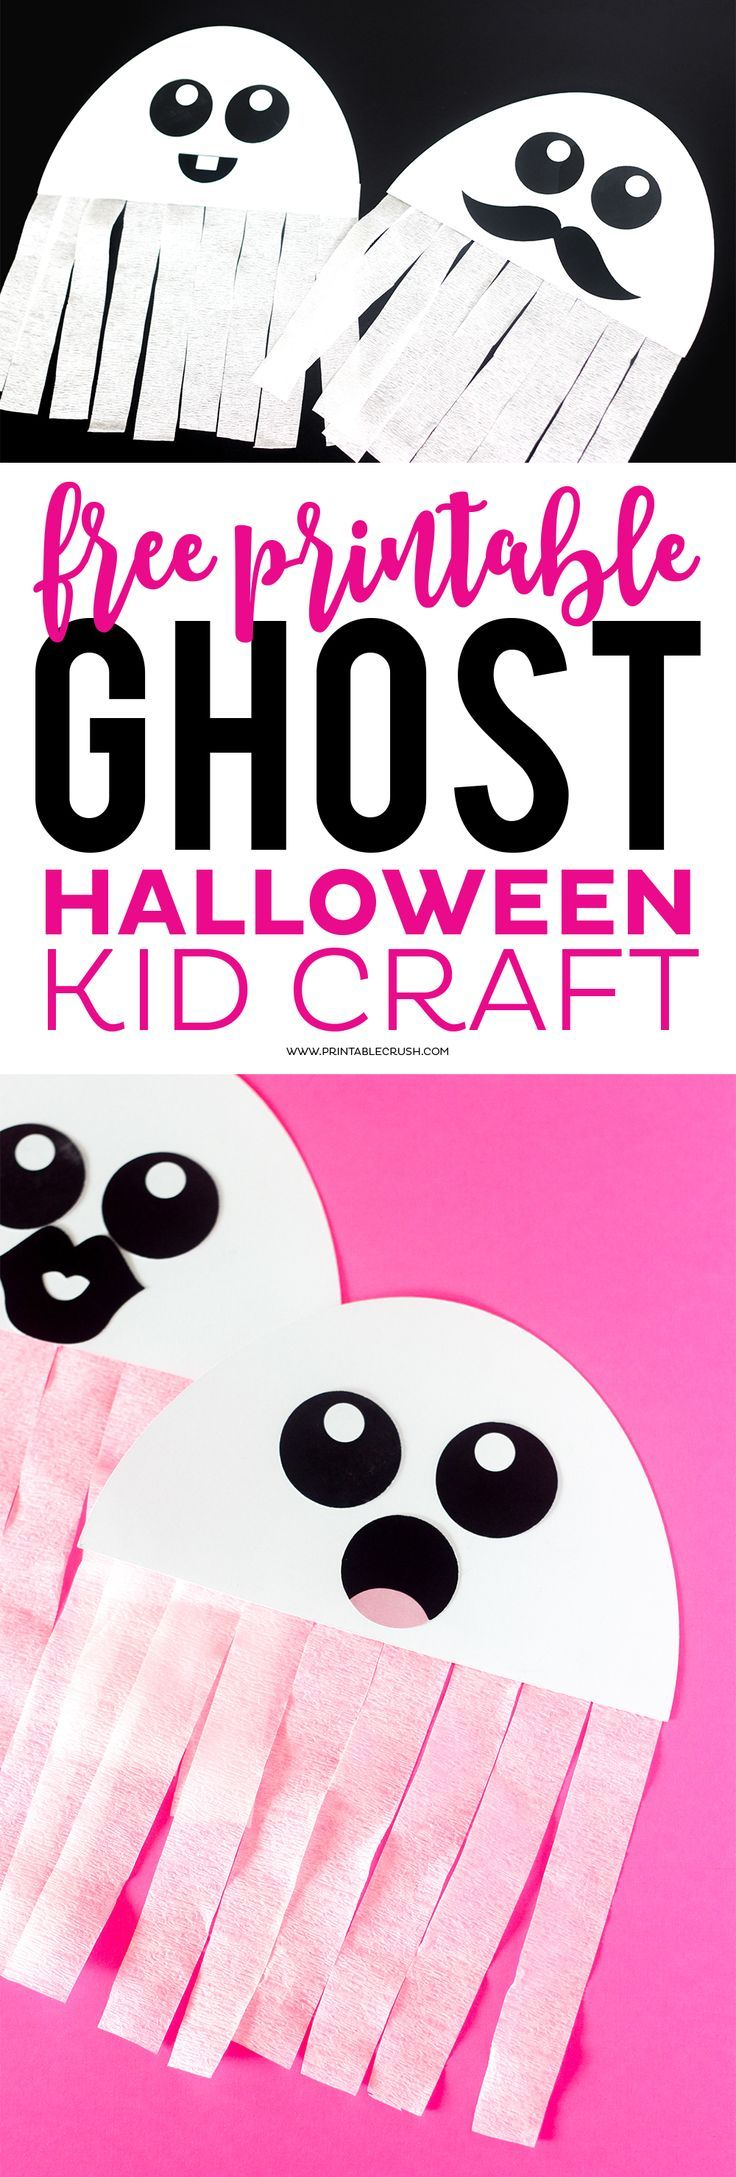 this free printable ghost halloween craft would be a great activity for your halloween party